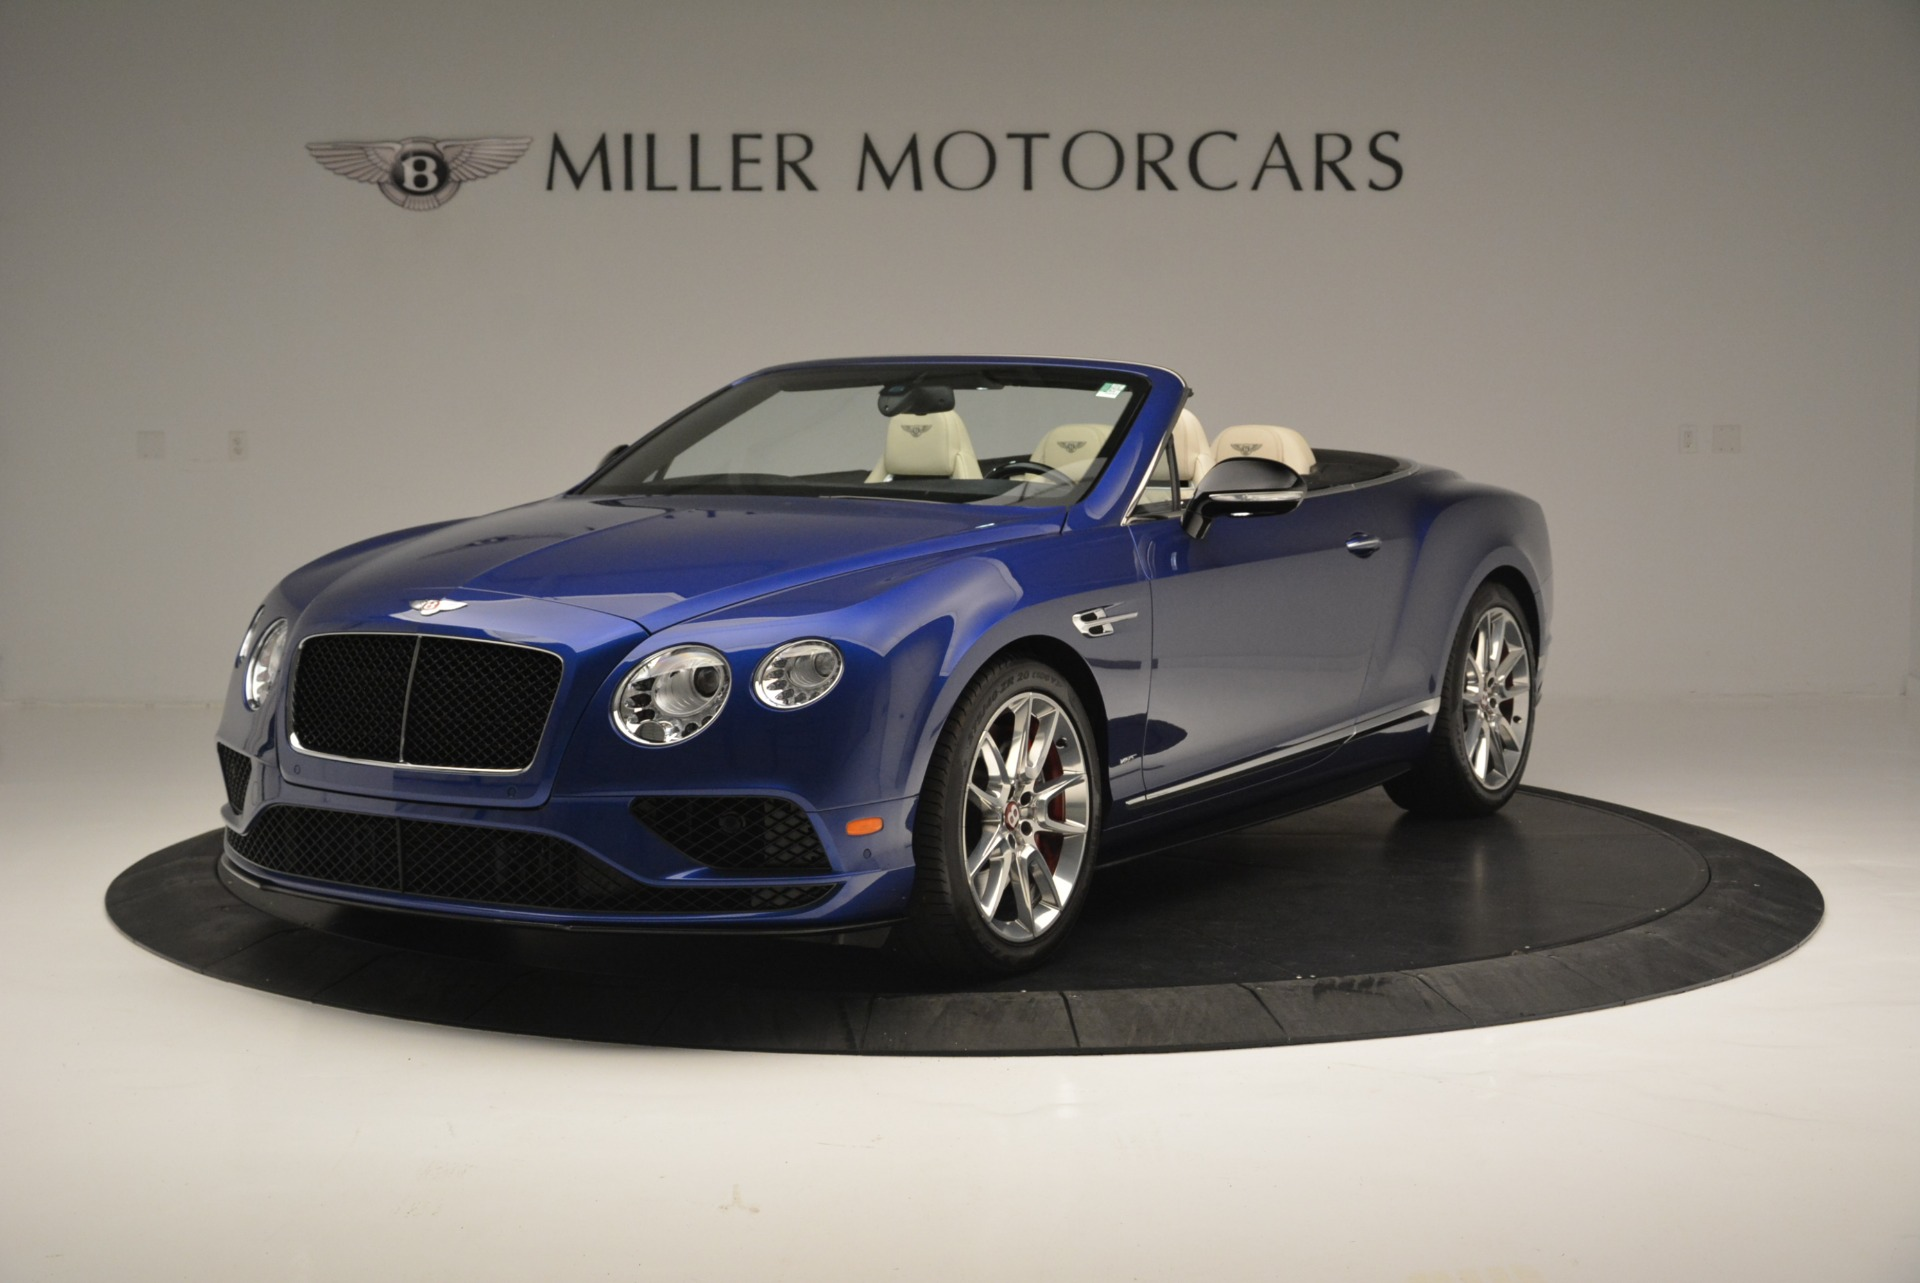 Pre Owned 2016 Bentley Continental Gt V8 S For Sale Miller Motorcars Stock 7415